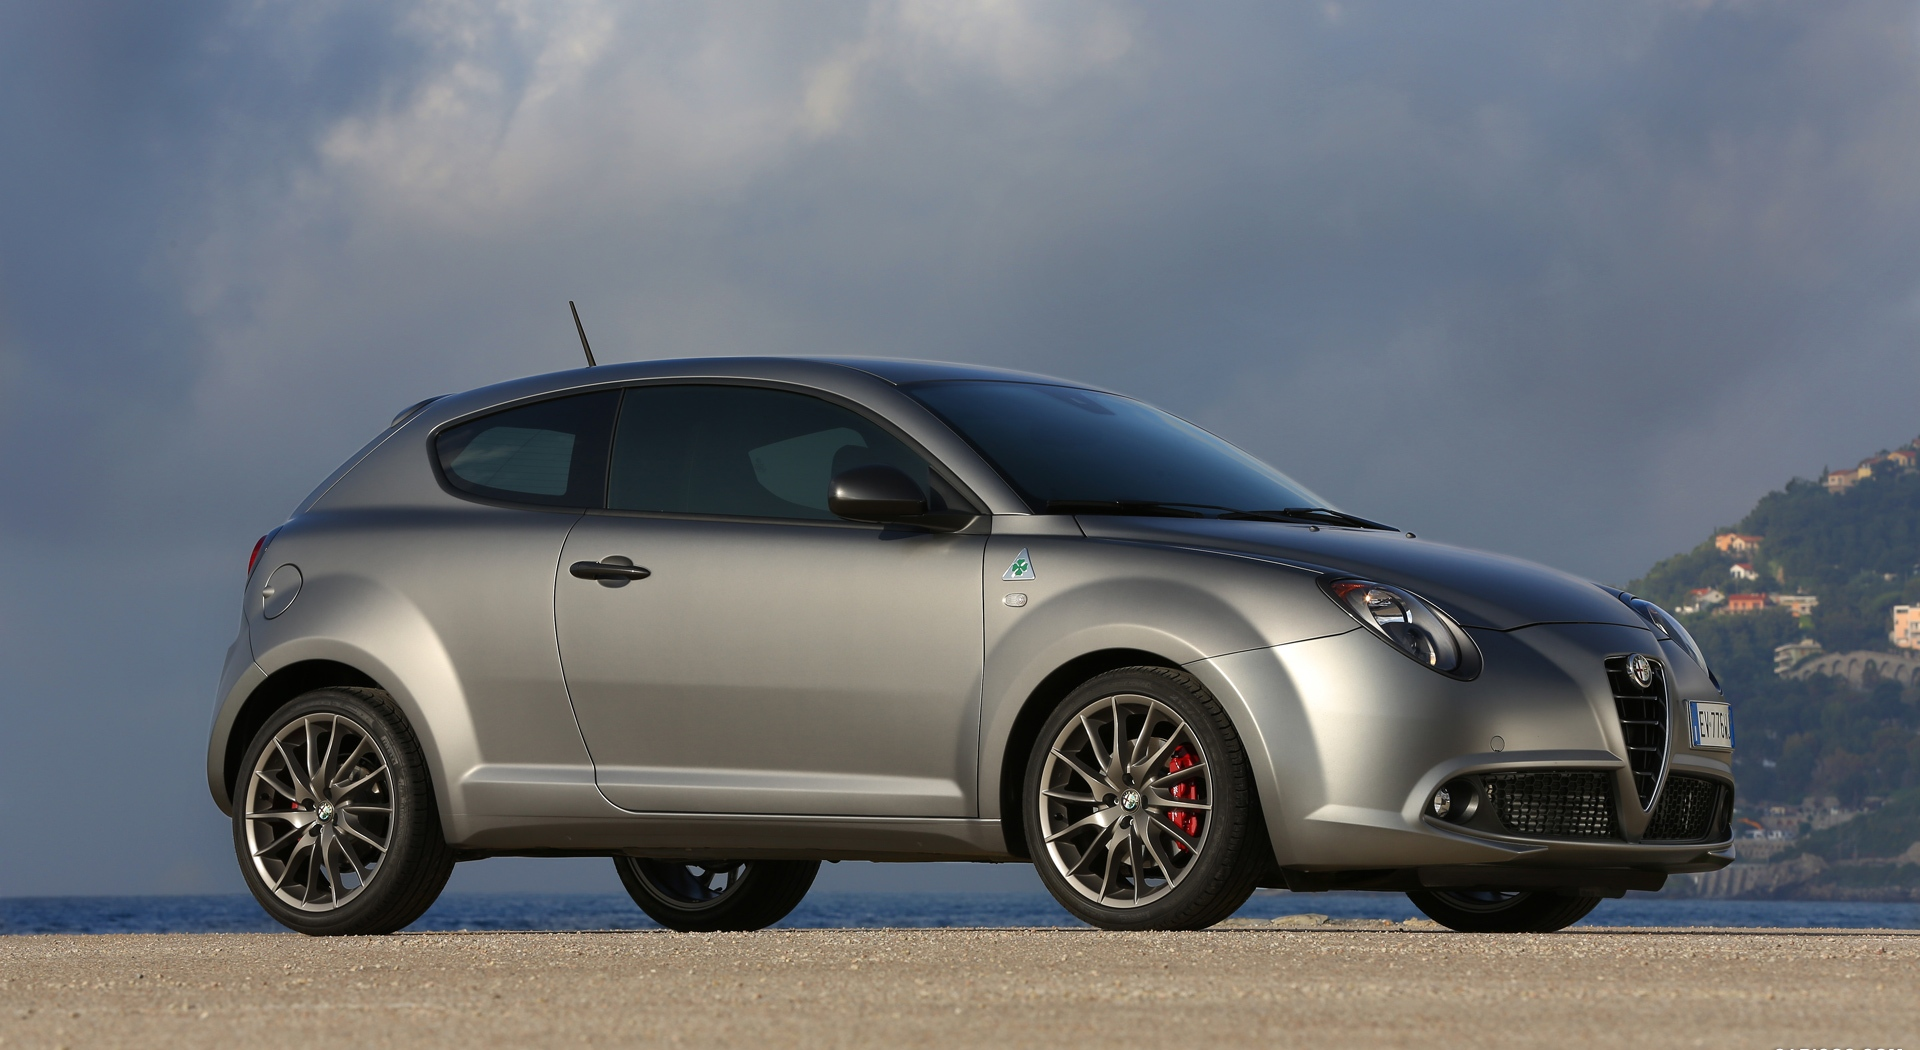 alfa romeo mito wallpaper magnificent hd desktop. Black Bedroom Furniture Sets. Home Design Ideas